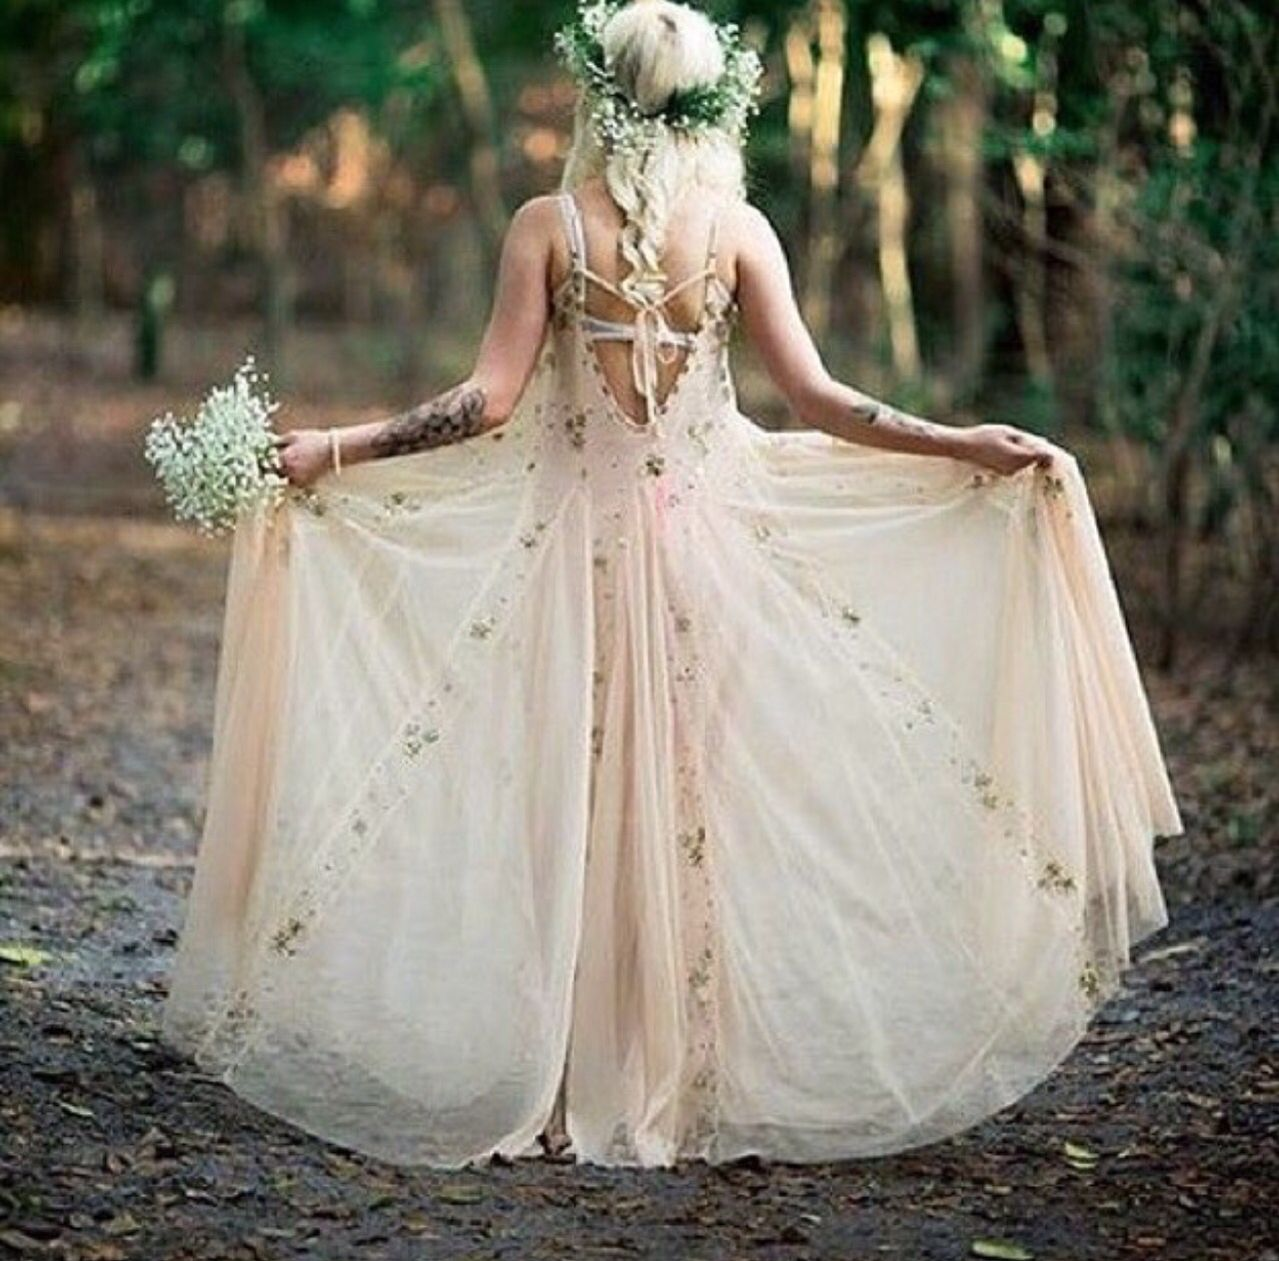 Pin by dawn rogers on Style & fashions | Pinterest | Bohemian and ...